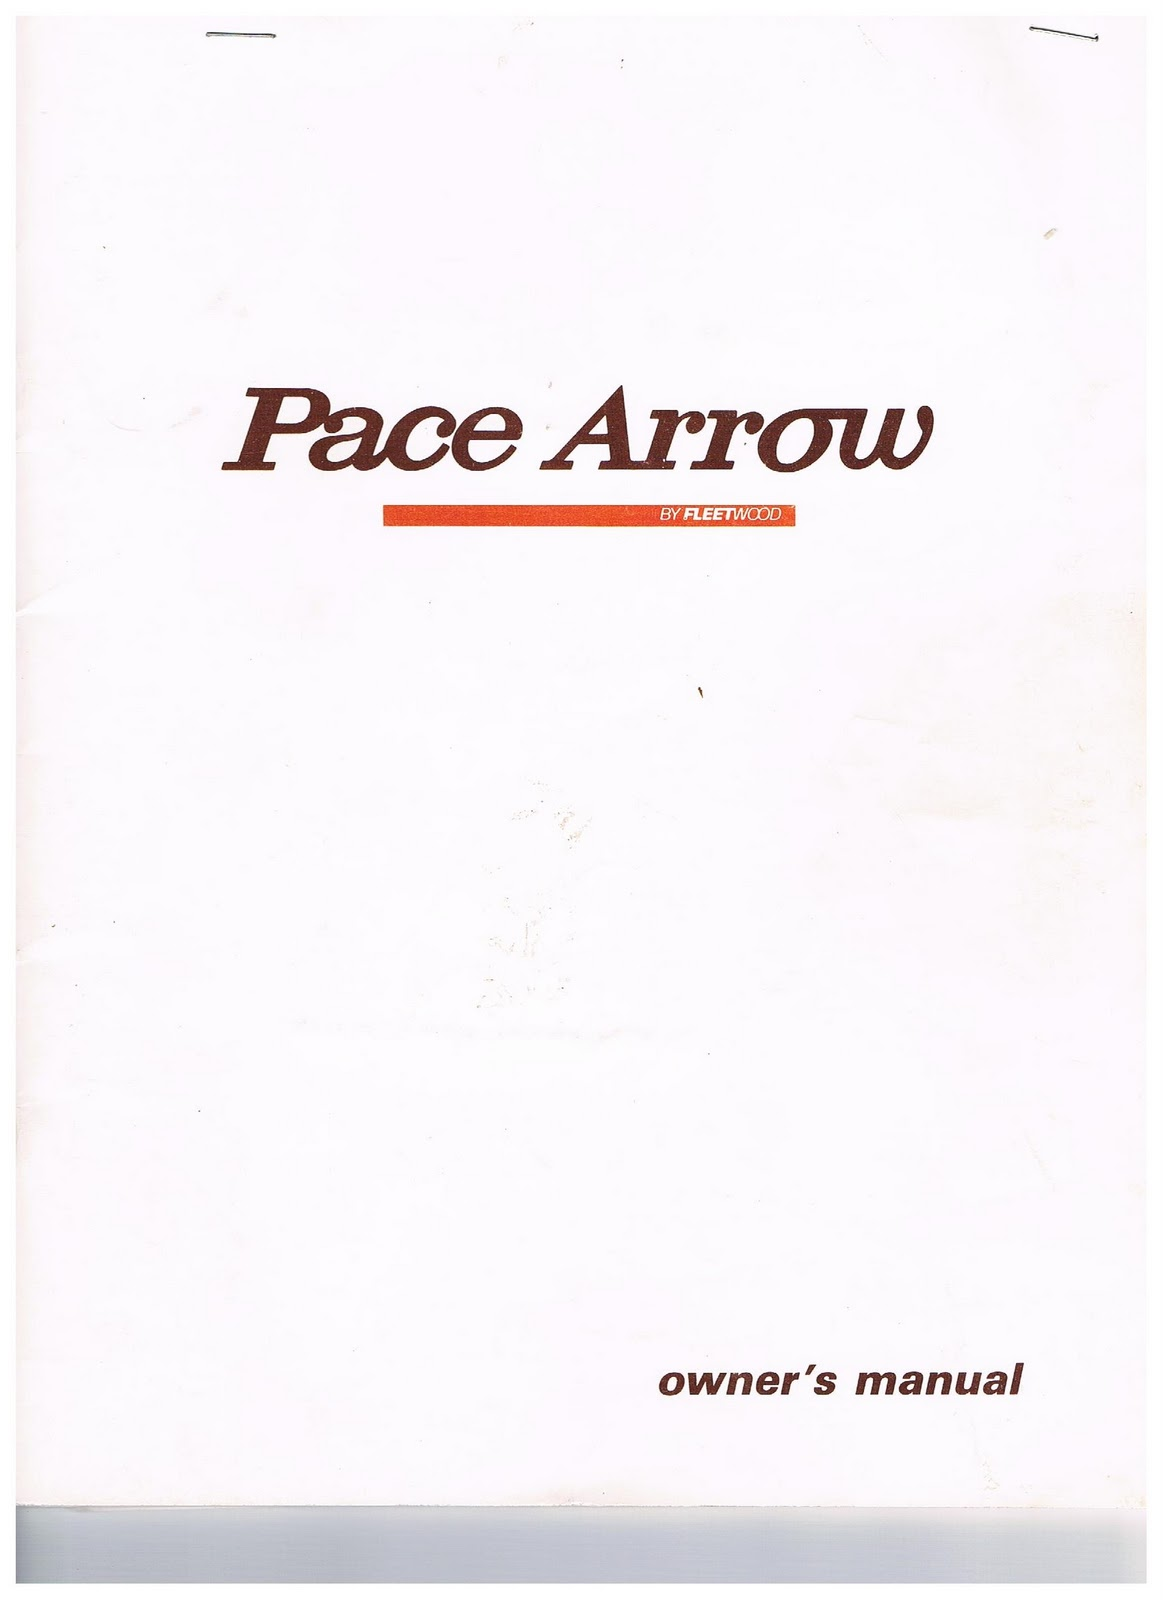 1983 Fleetwood Pace Arrow Owners Manuals 1988 Manual Wiring Diagram